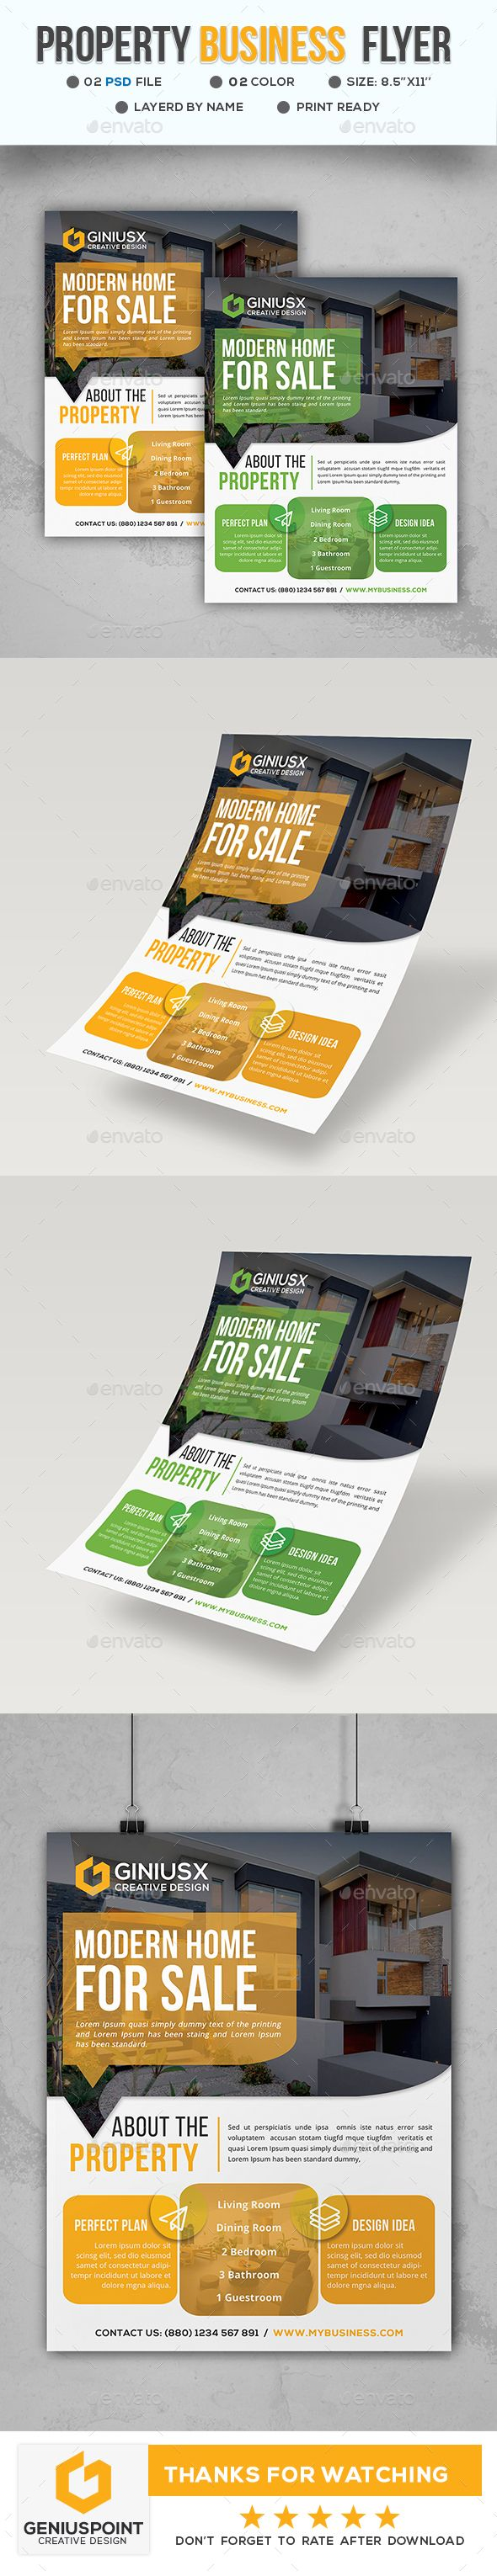 Property Business Flyer Template PSD